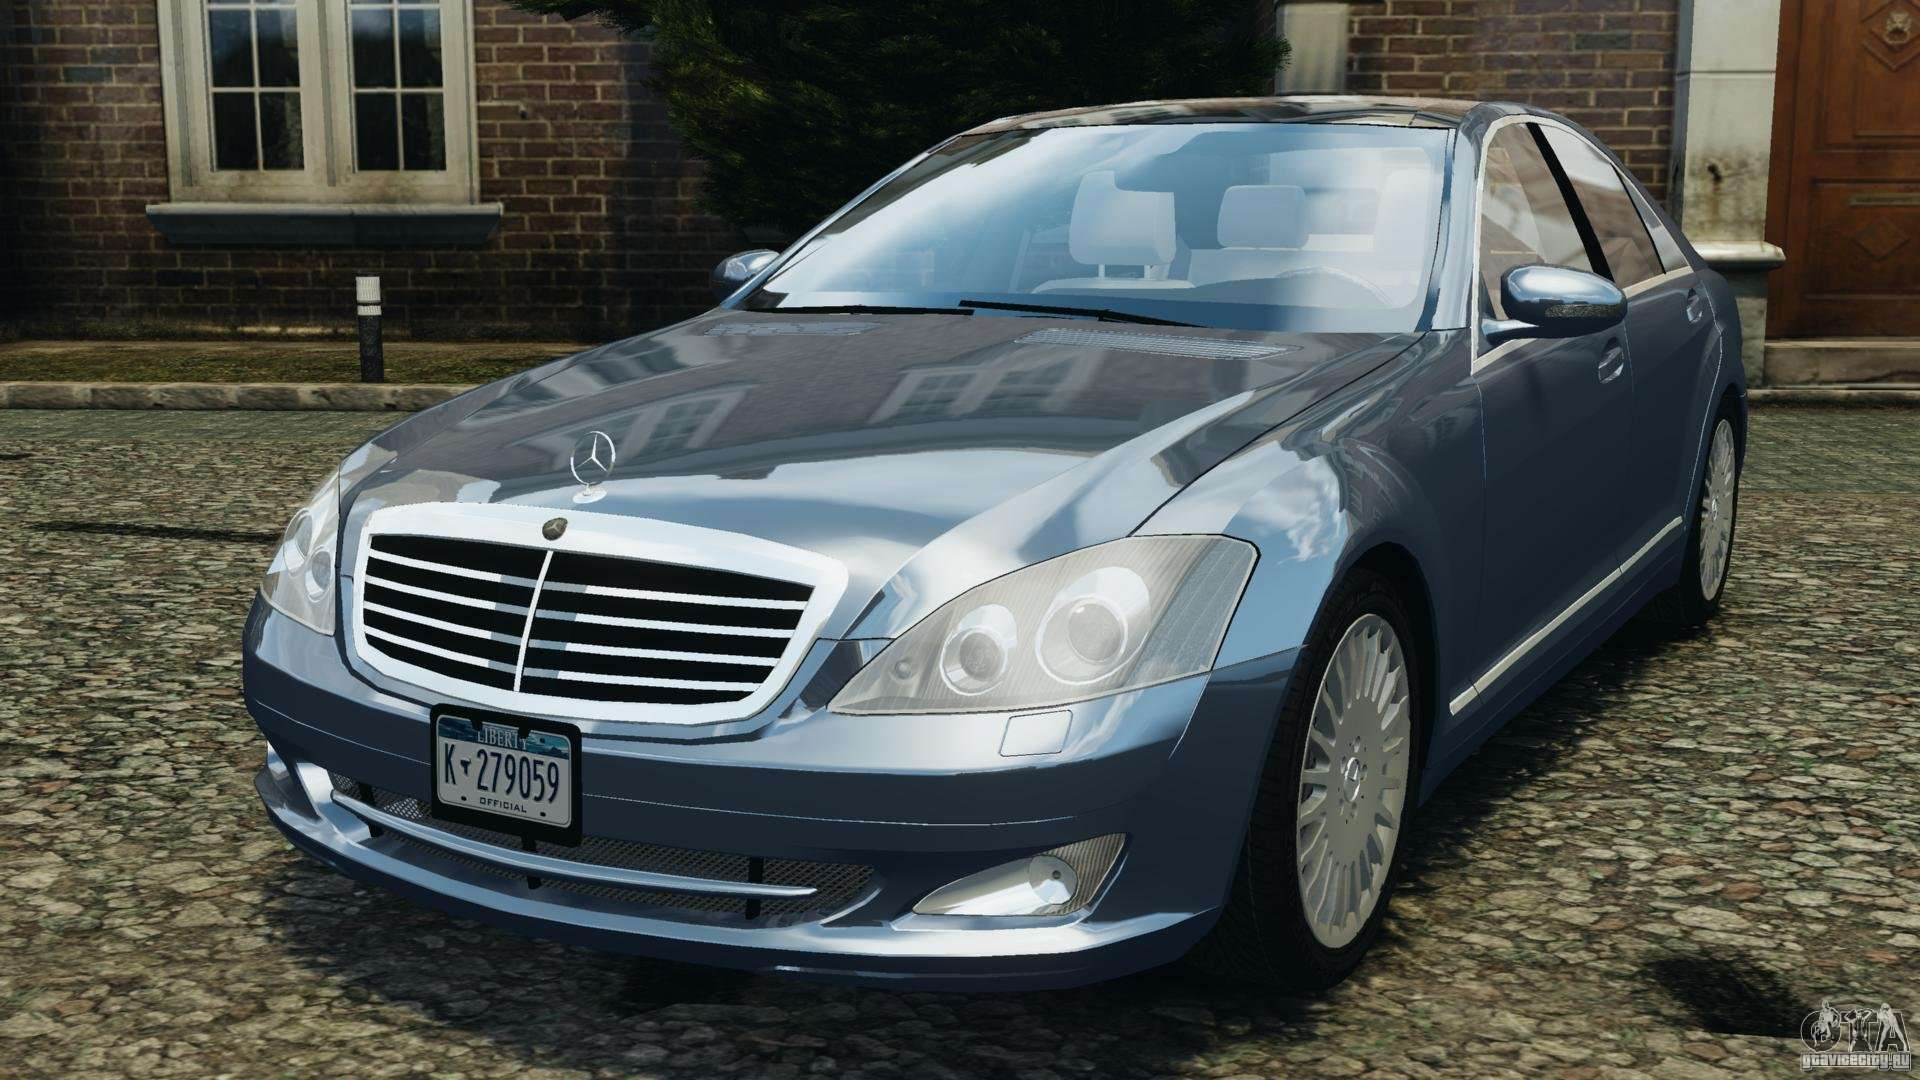 Mercedes Benz W221 S500 2006 For Gta 4